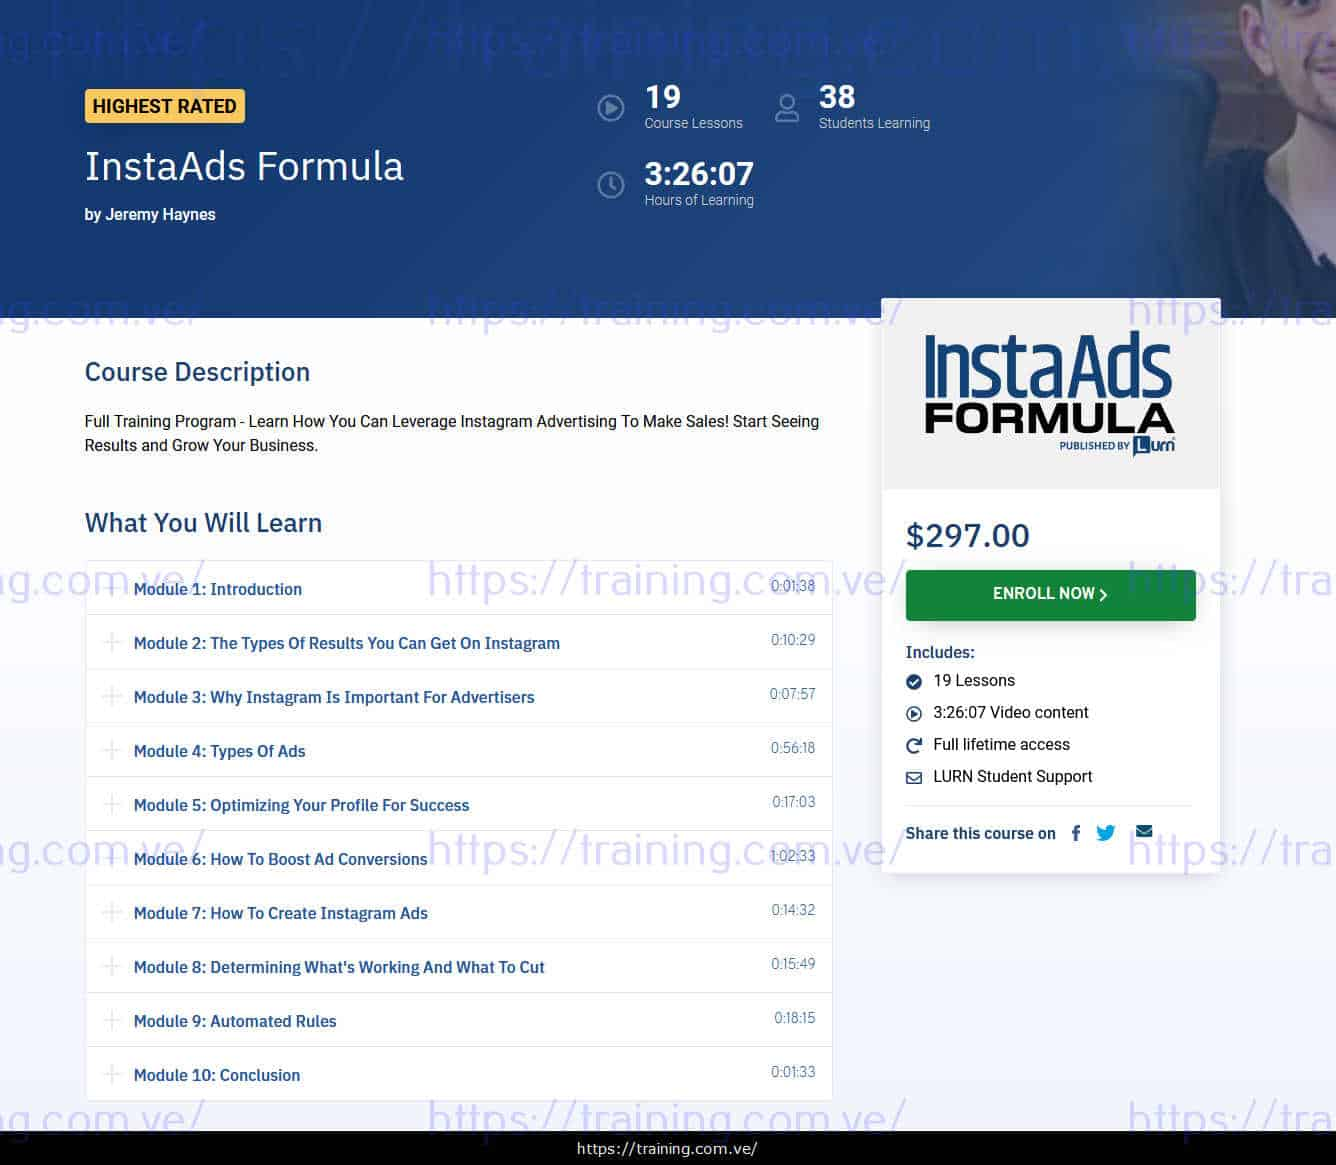 InstaAds Formula by Jeremy Haynes sales page